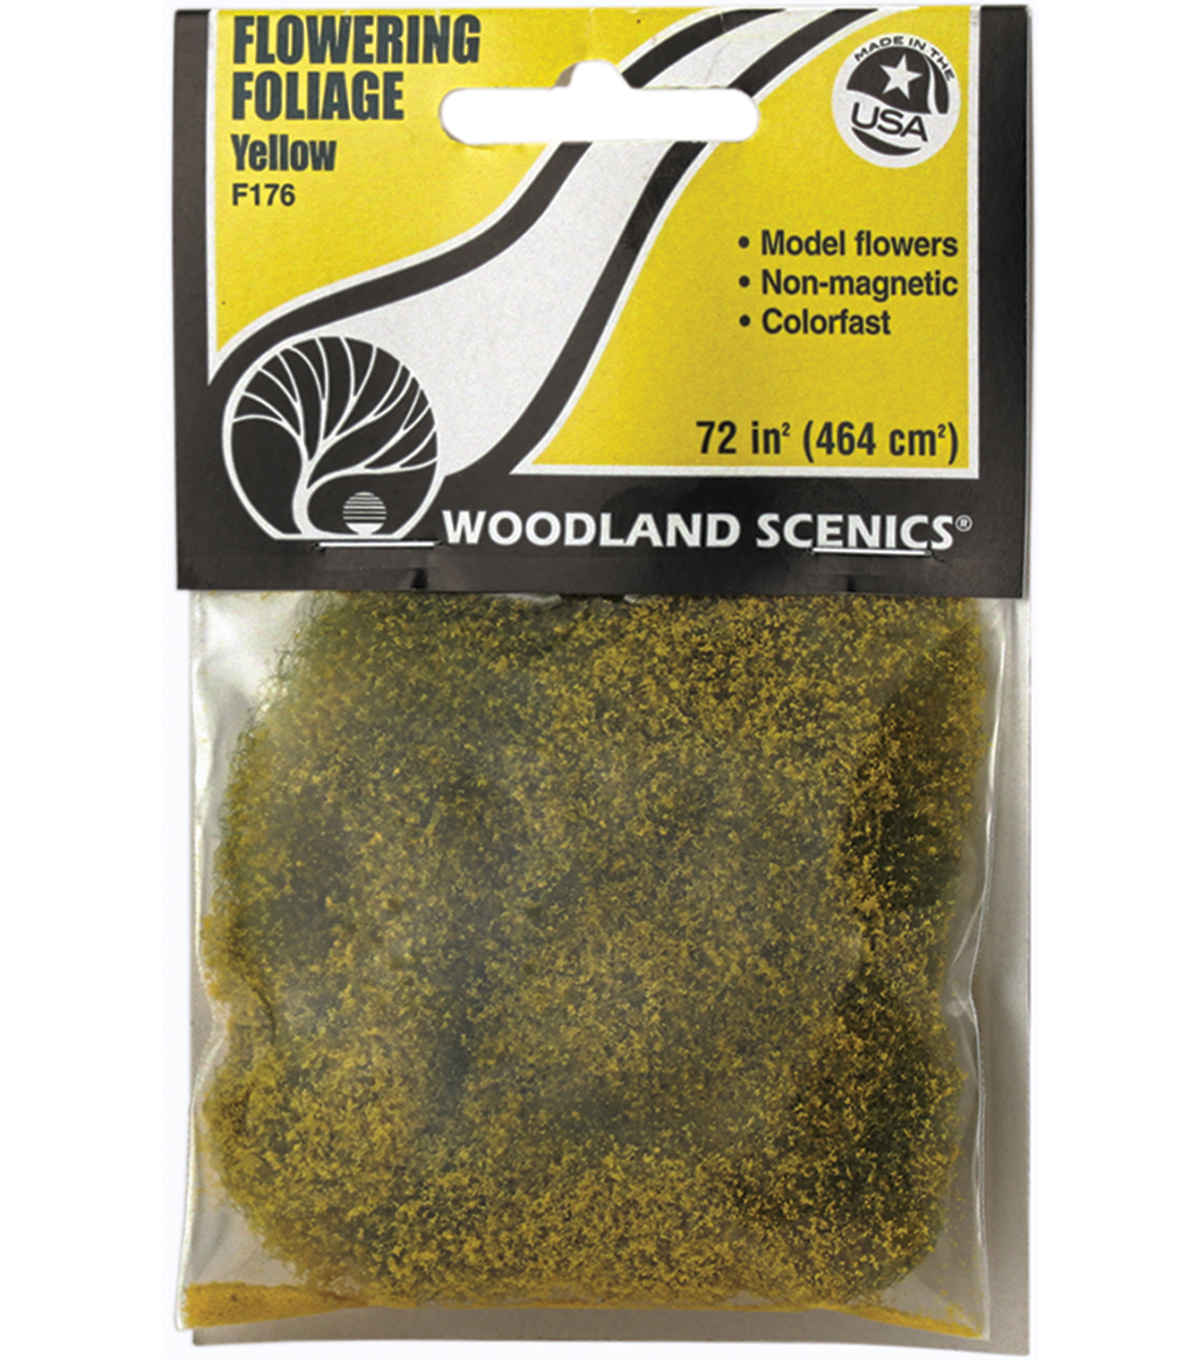 Woodland Scenics 72 Square Inches Flowering Foliage